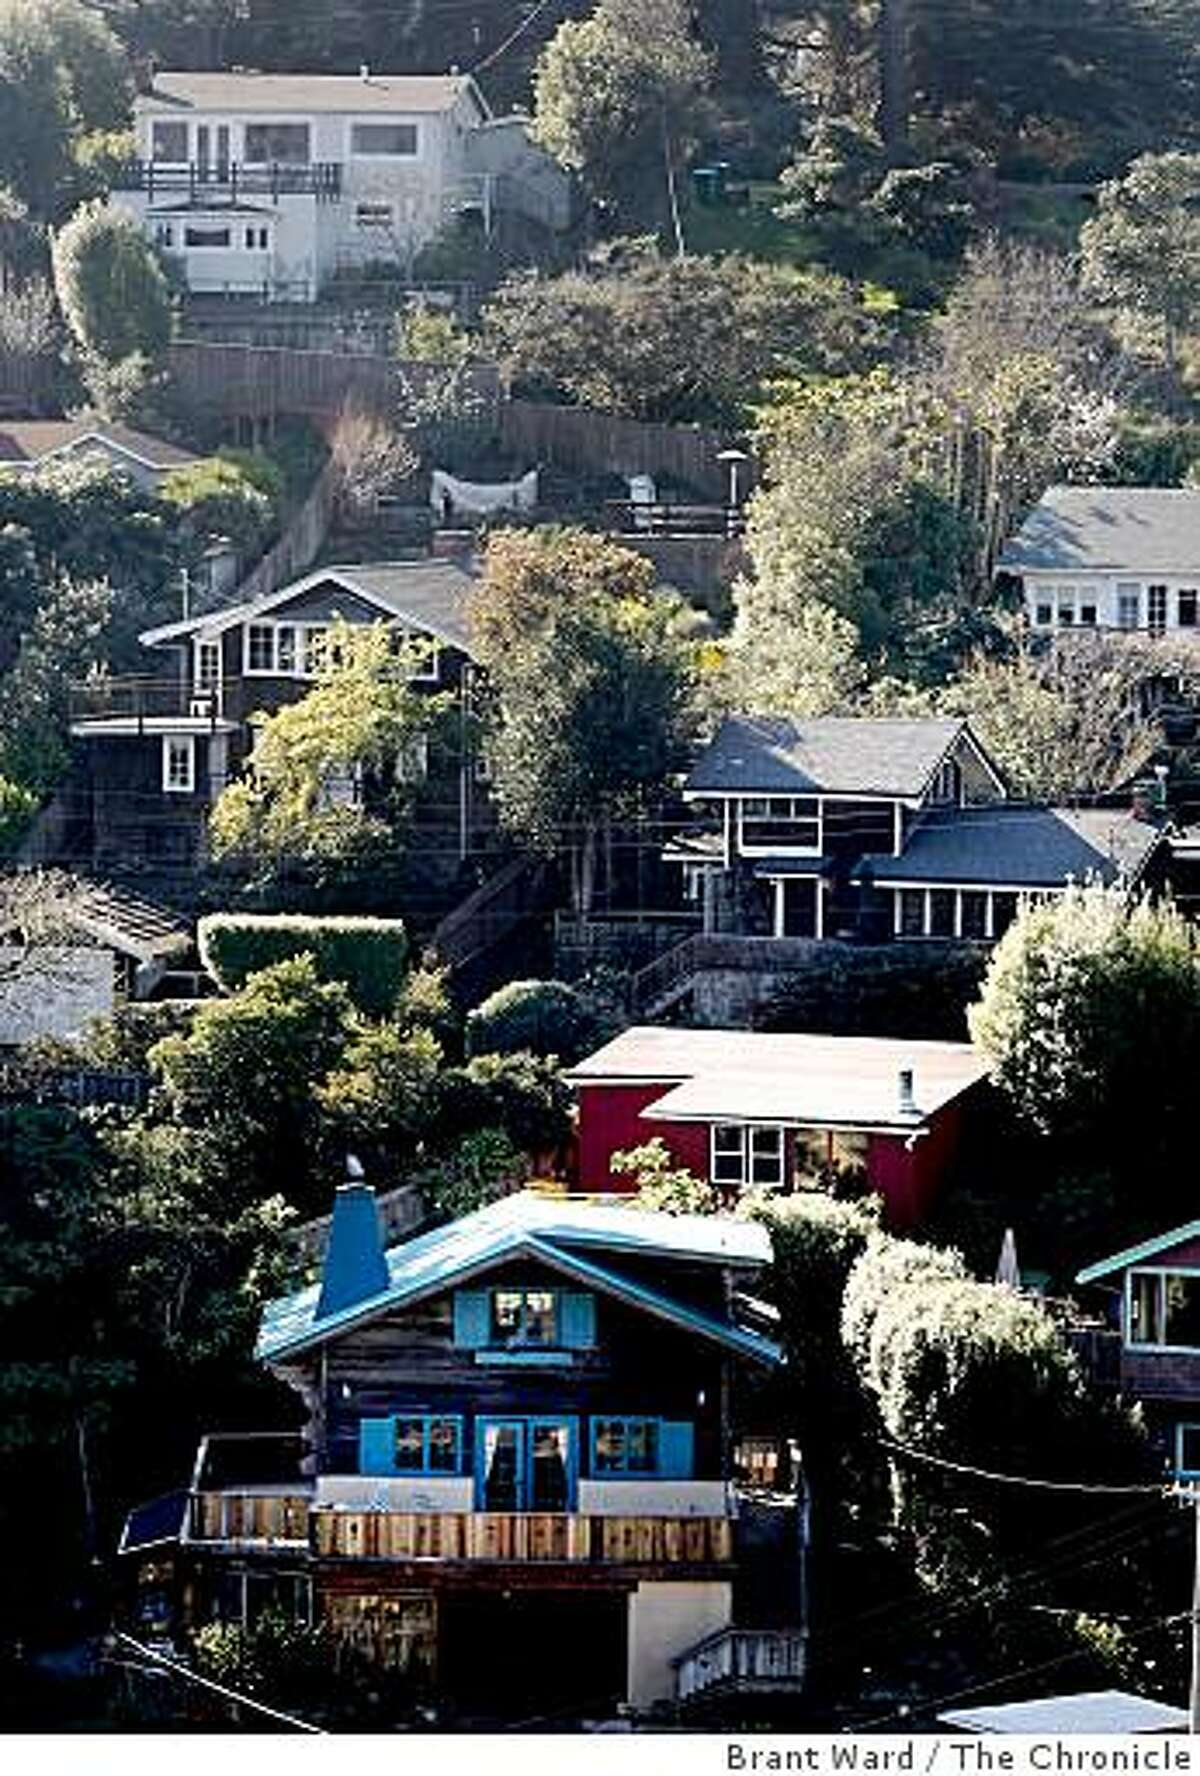 Homes built on a steep slope near downtown Bolinas. With little rainfall this year, officials are worried about dying pine trees and fires. Bolinas, Marin County's hippie enclave on the ocean, is facing a severe water shortage. Residents have been told to use only 150 gallons a day and businesses must cut back by 25 percent.